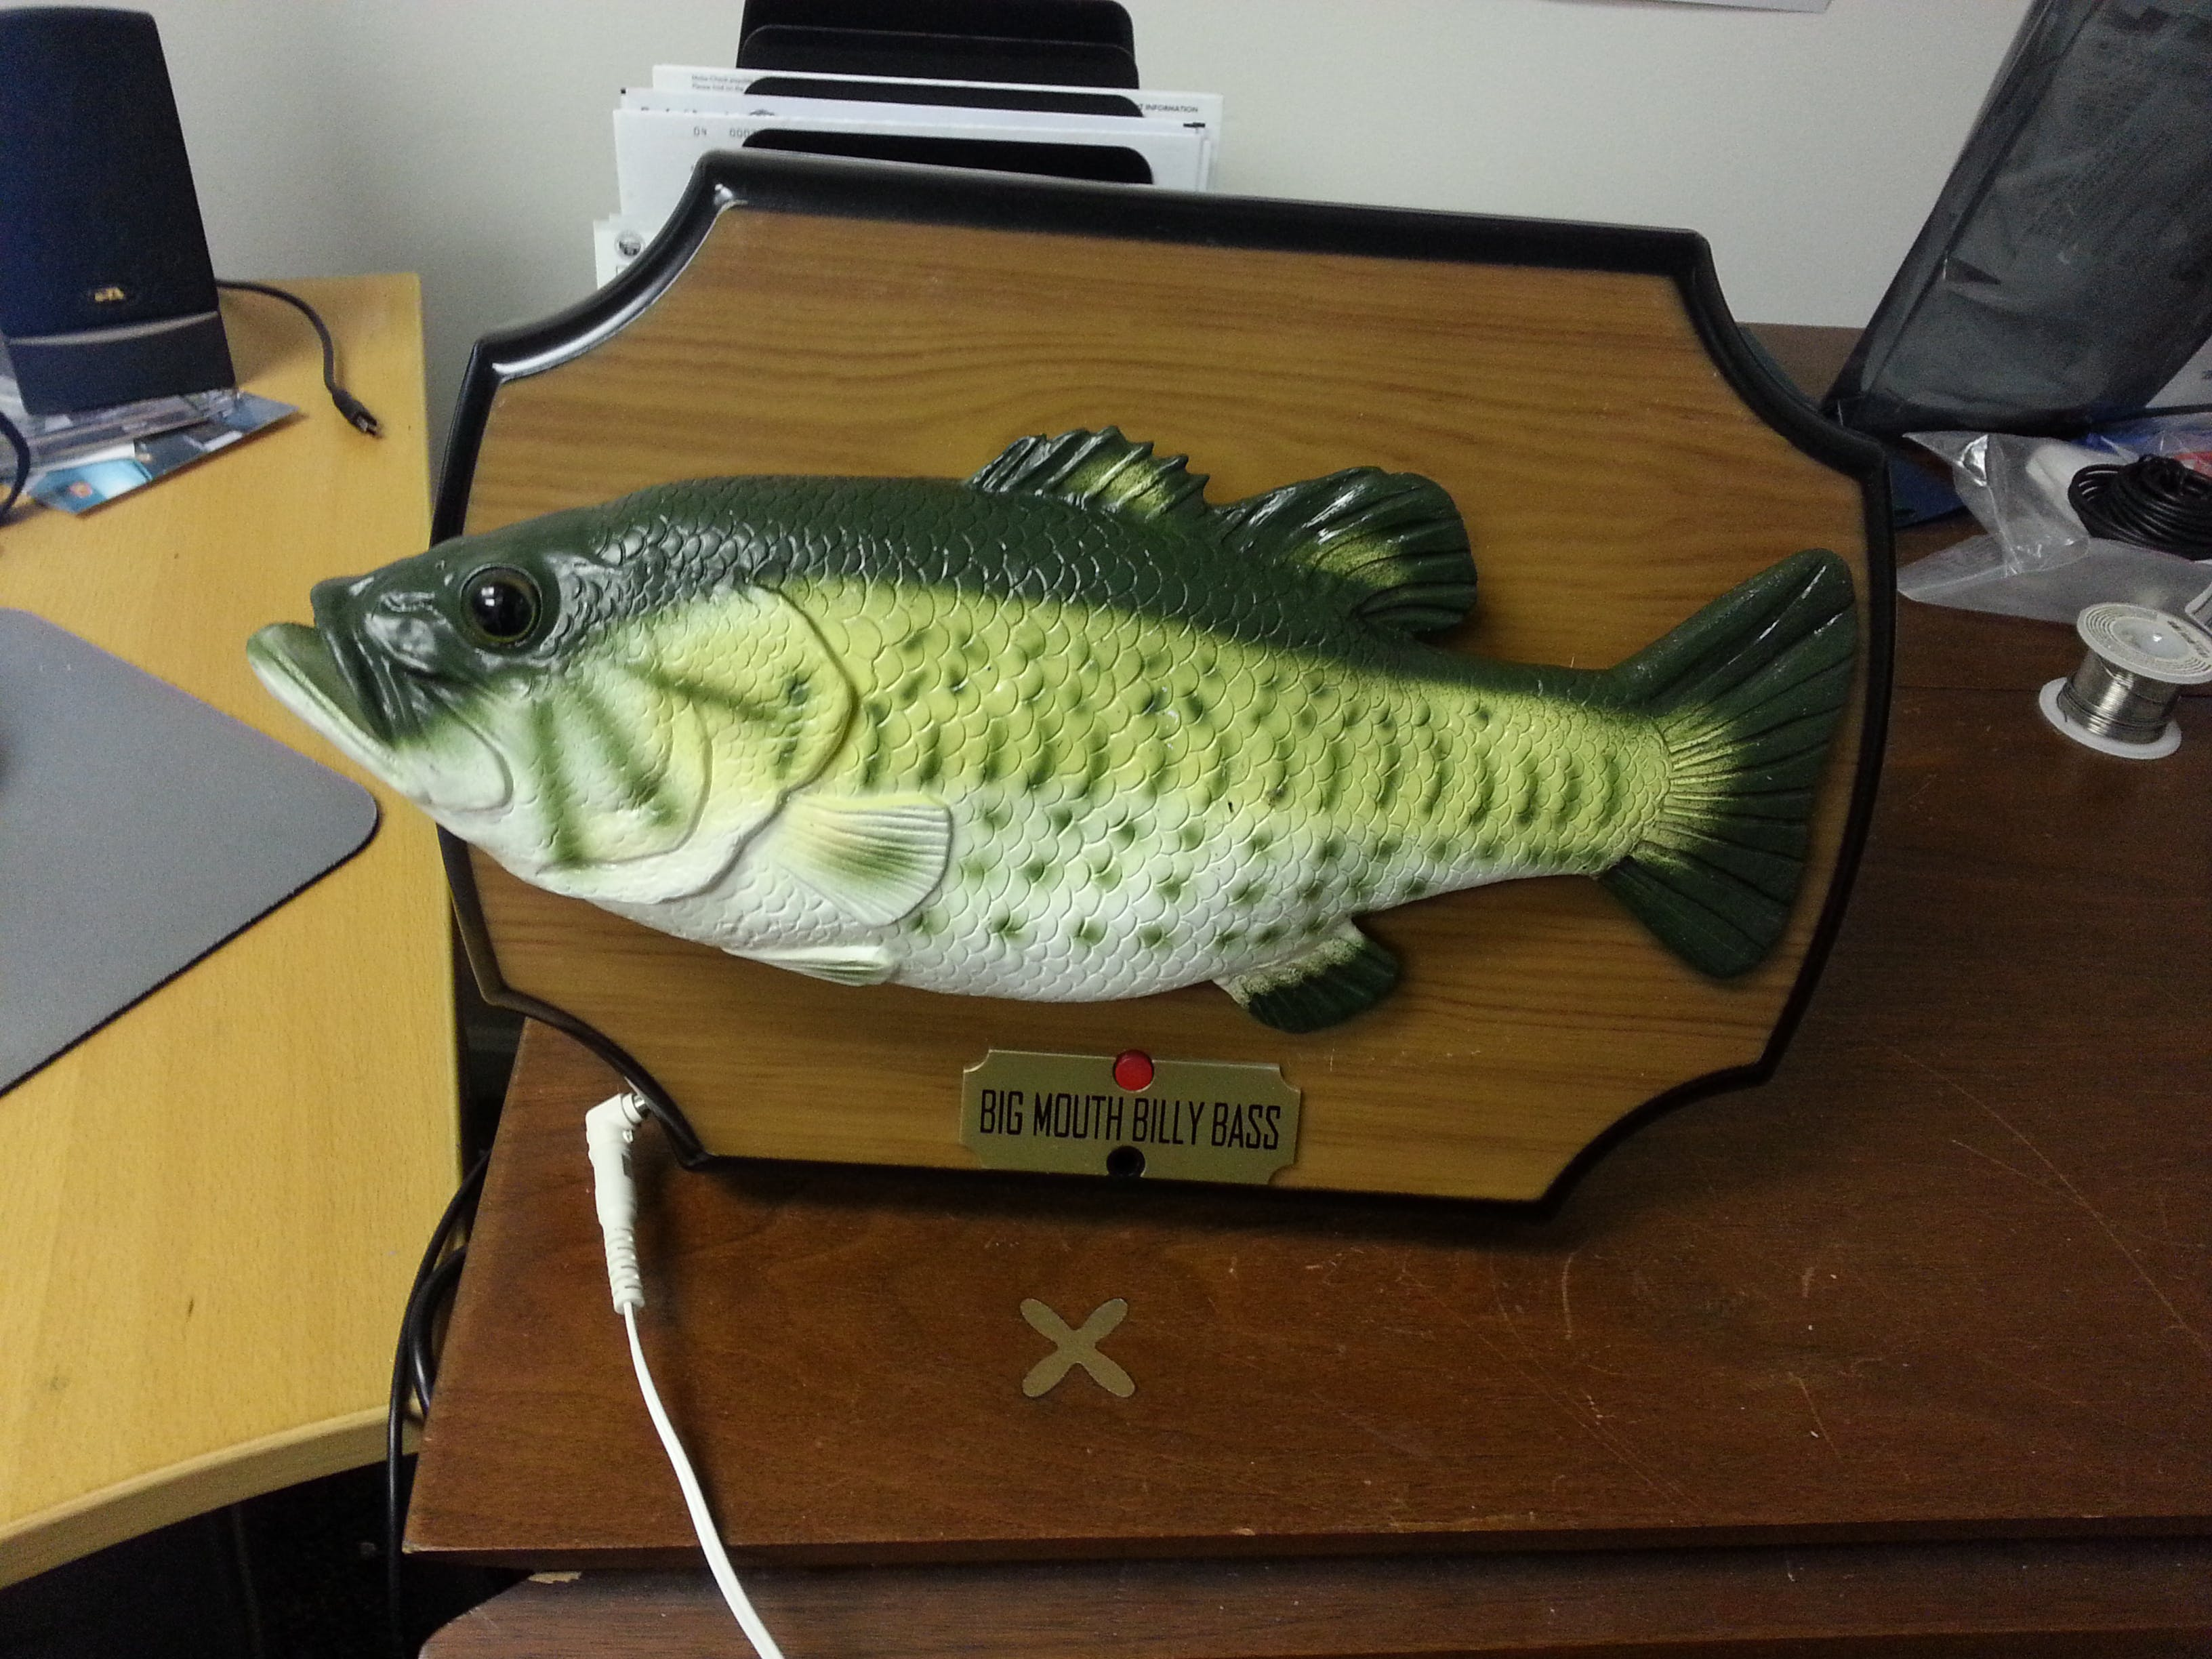 C.H.I.P. - Big Mouth Billy Bass Fish